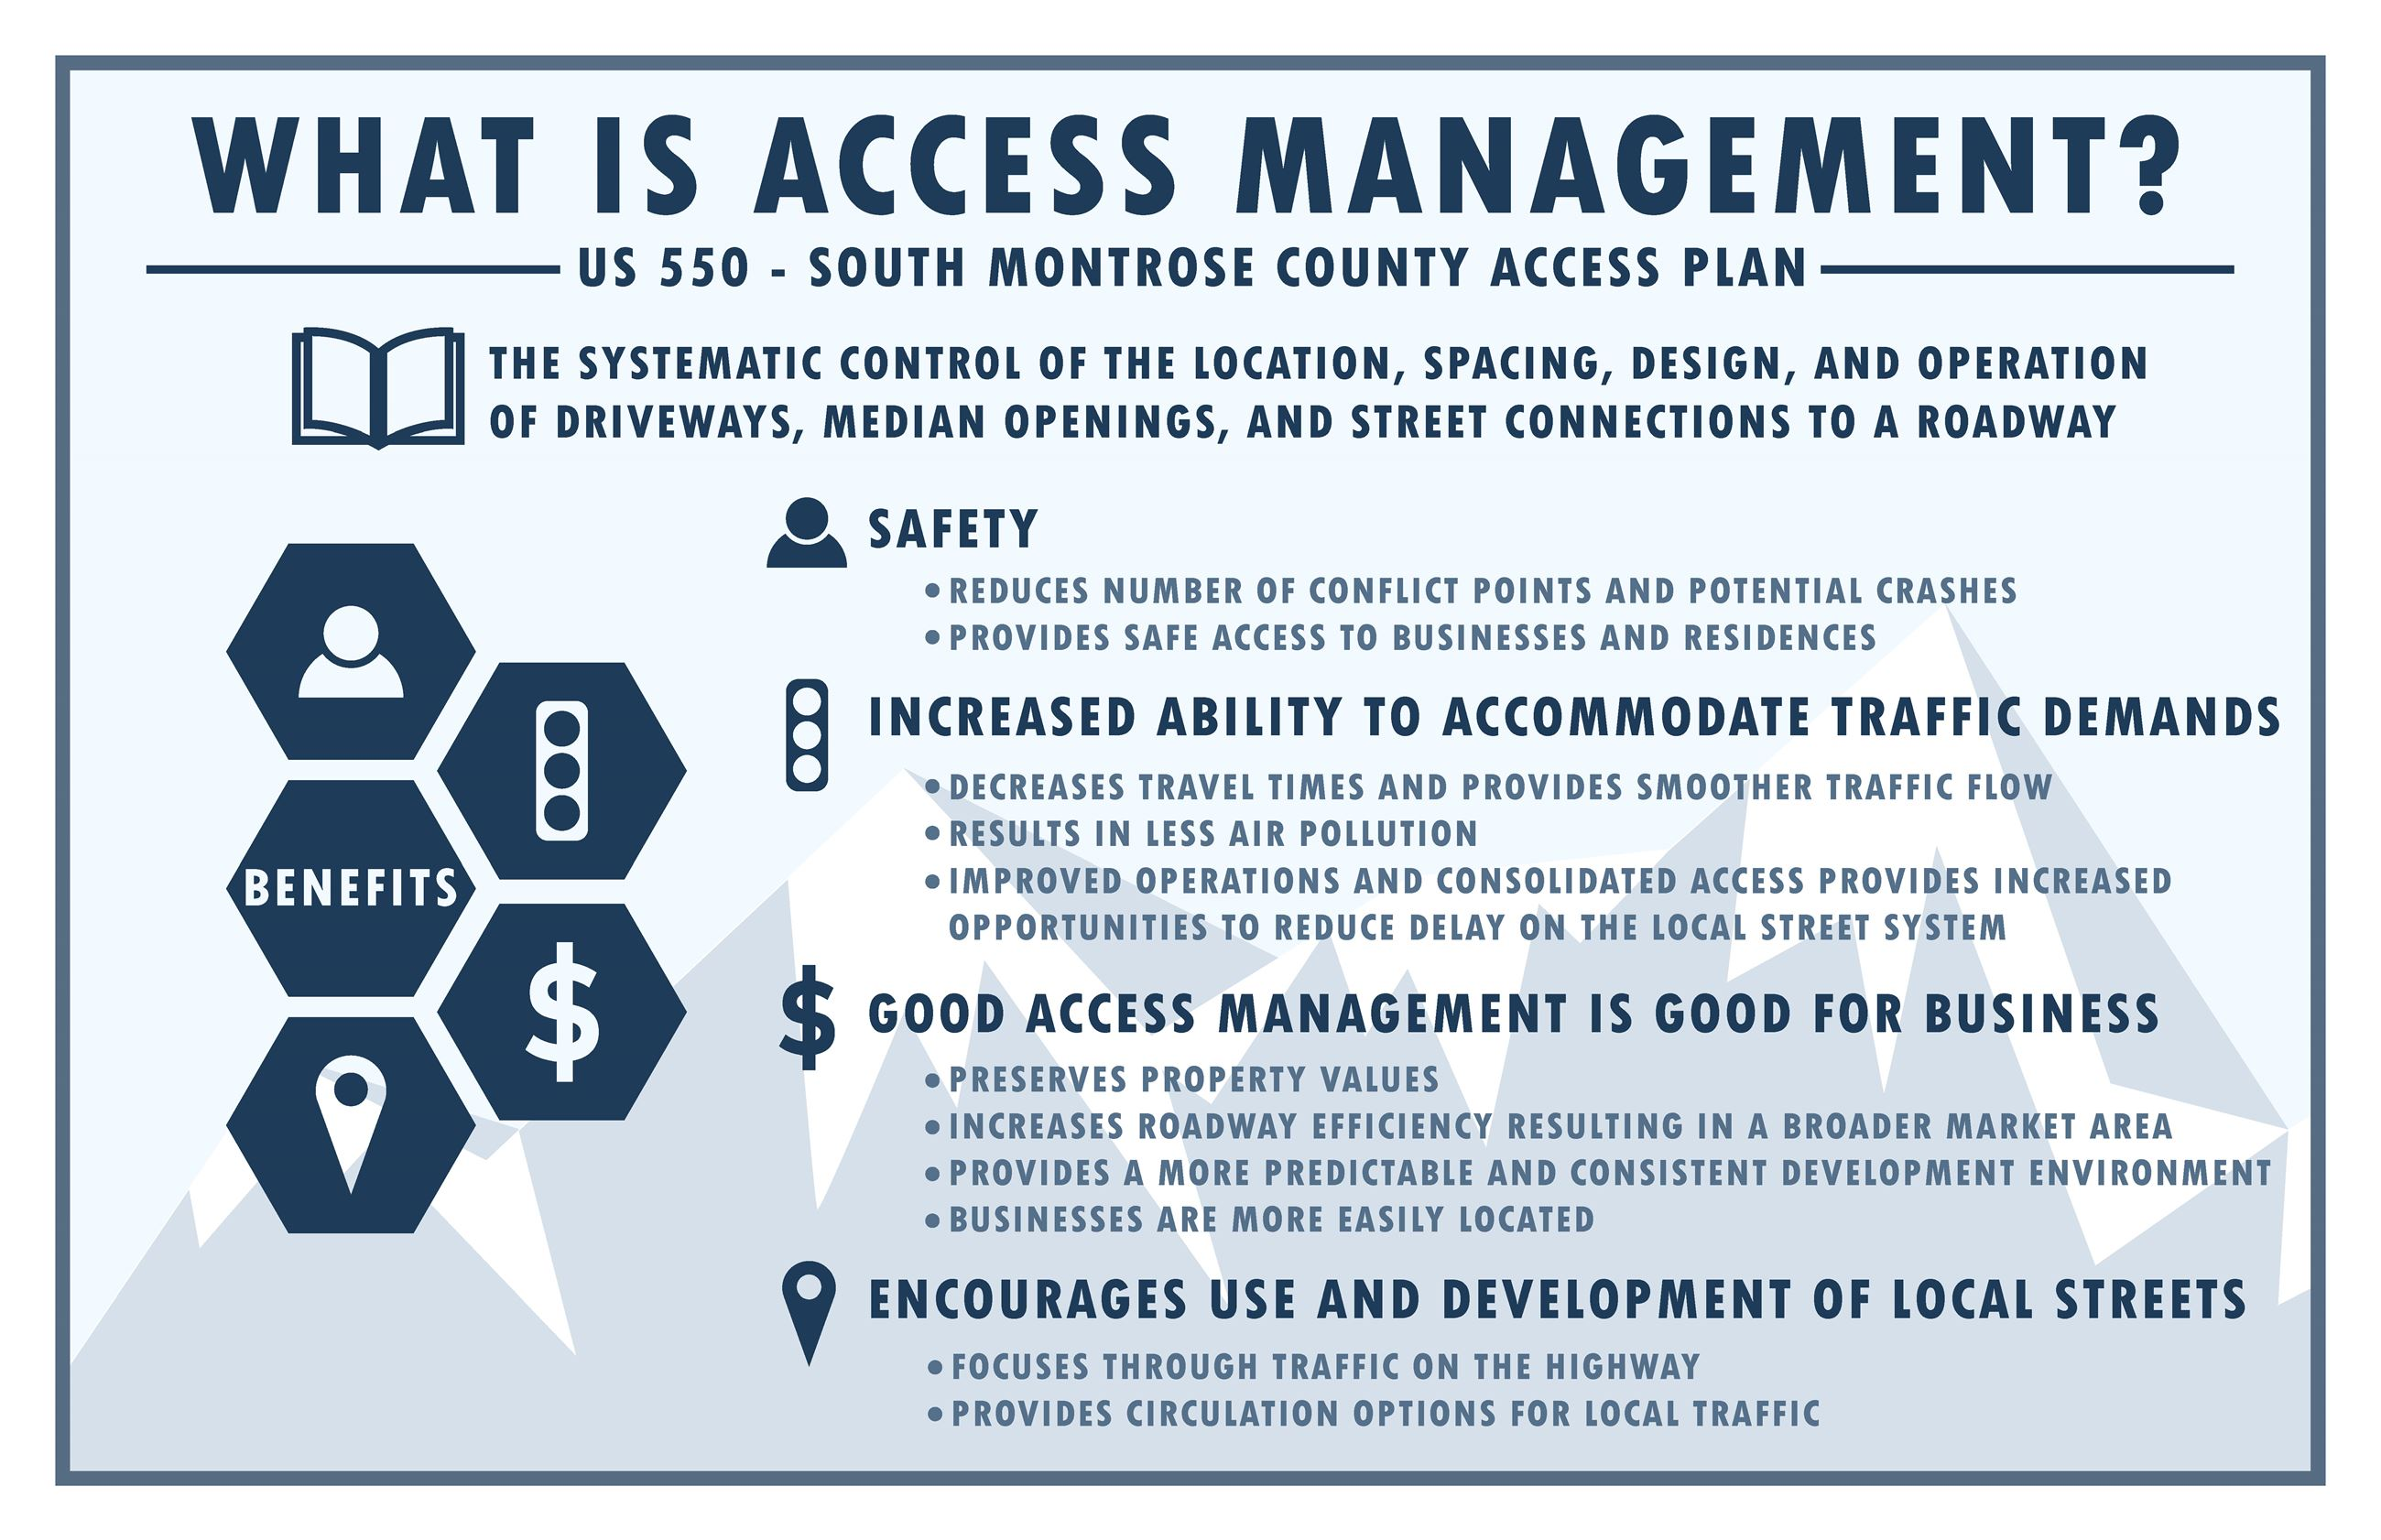 5- What is access management